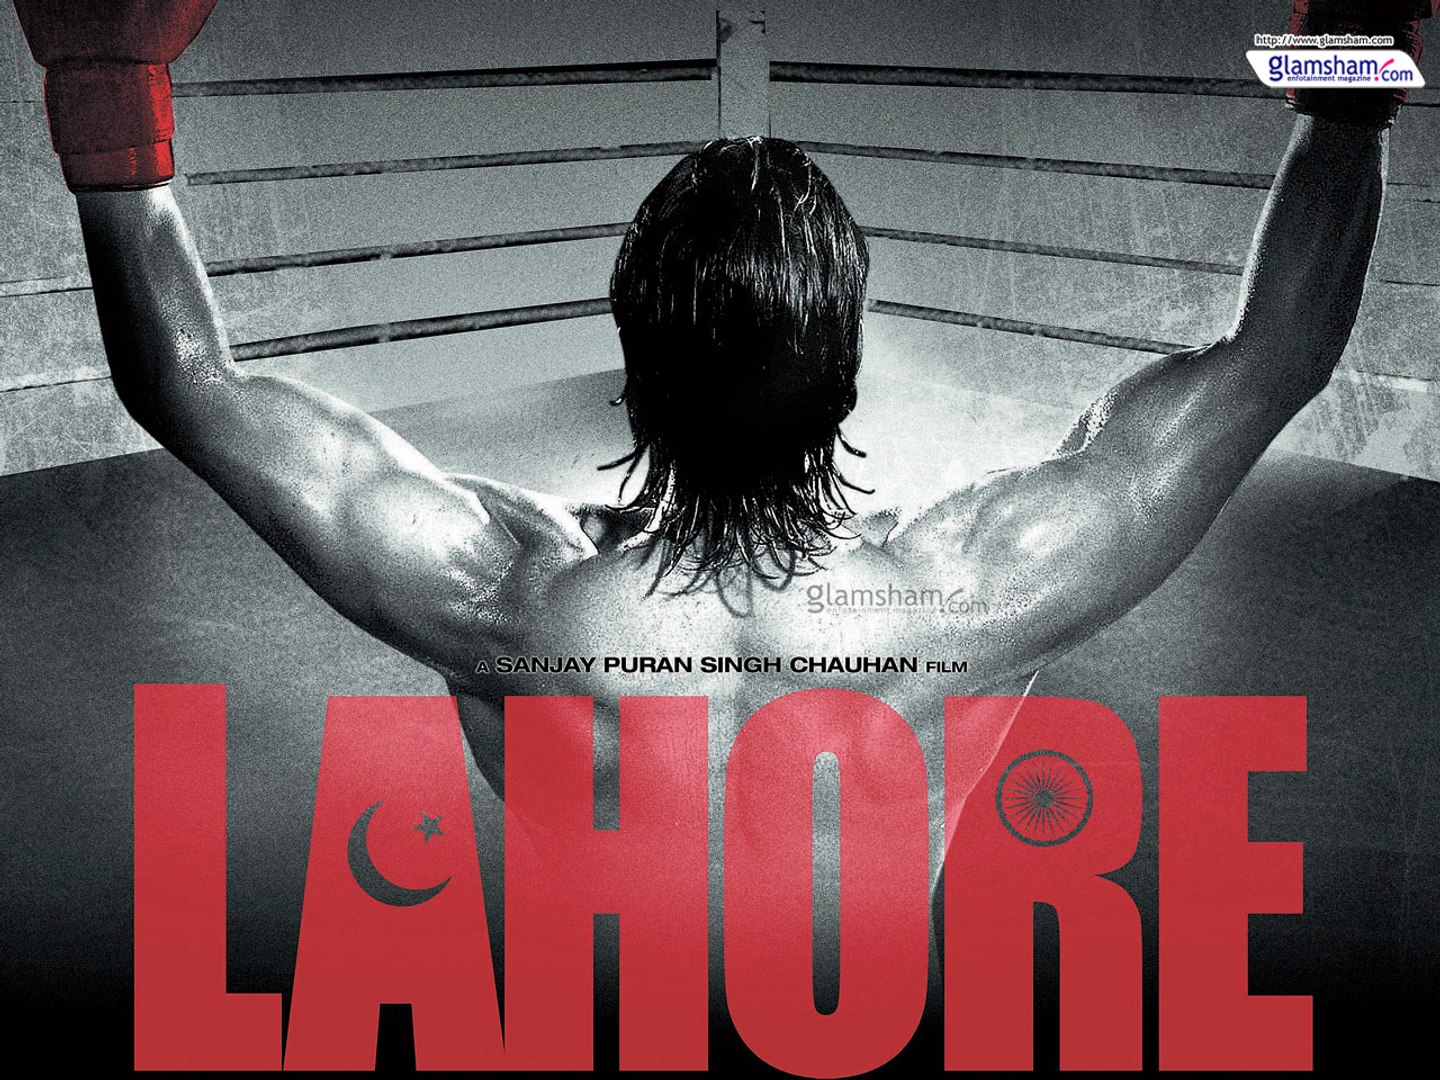 Lahore Full Movie _ Hindi Movies _ Bollywood Action Movies 2015 _ India Pakistan_part 3